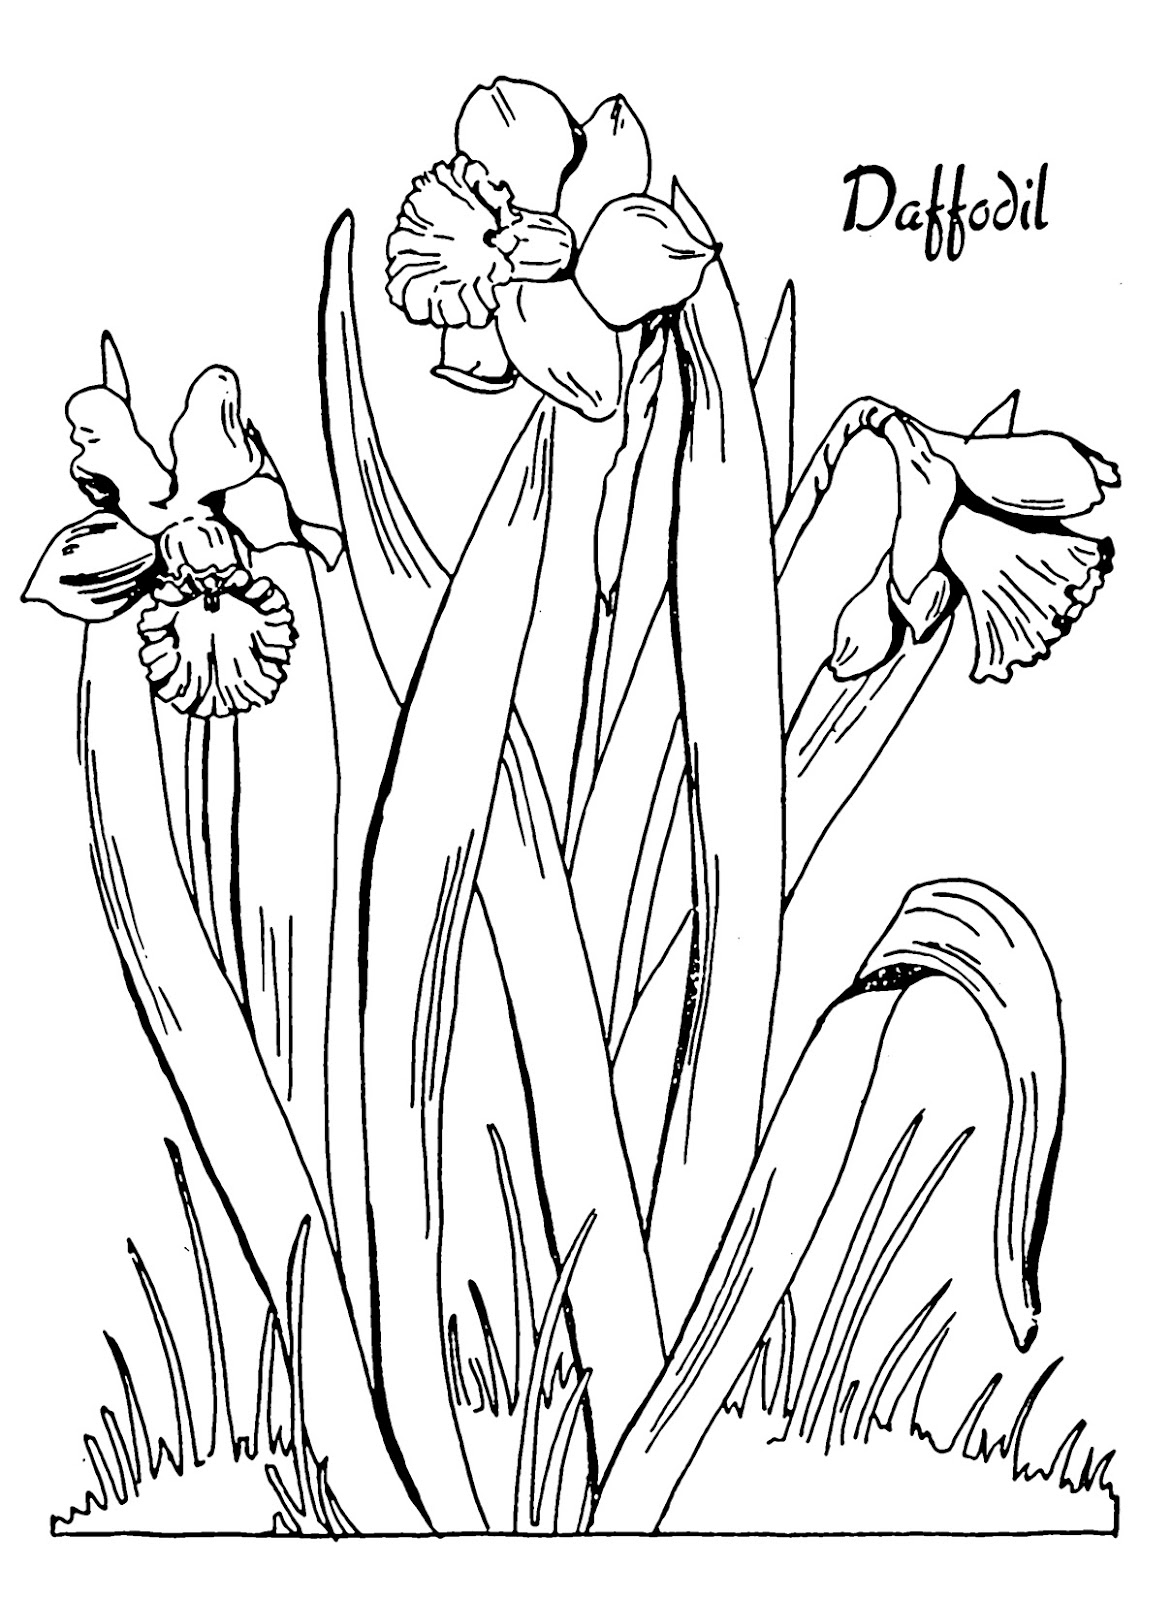 free downloadable coloring pages | Kids Printable - Daffodil Coloring Page - The Graphics Fairy